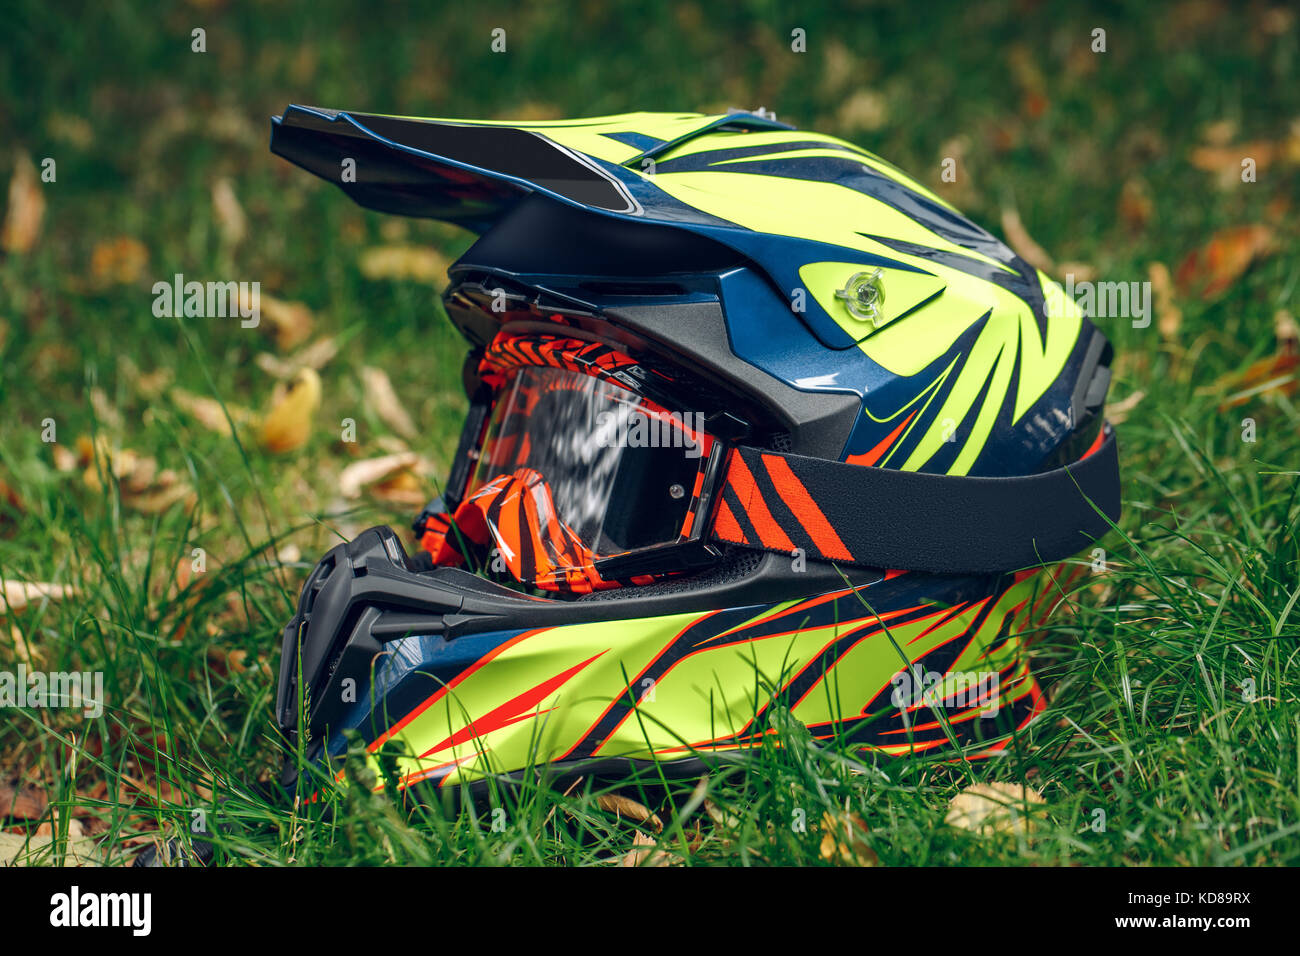 motorcycle helmet with glasses for protection dry fallen leaves over greem grass. Automne Stock Photo